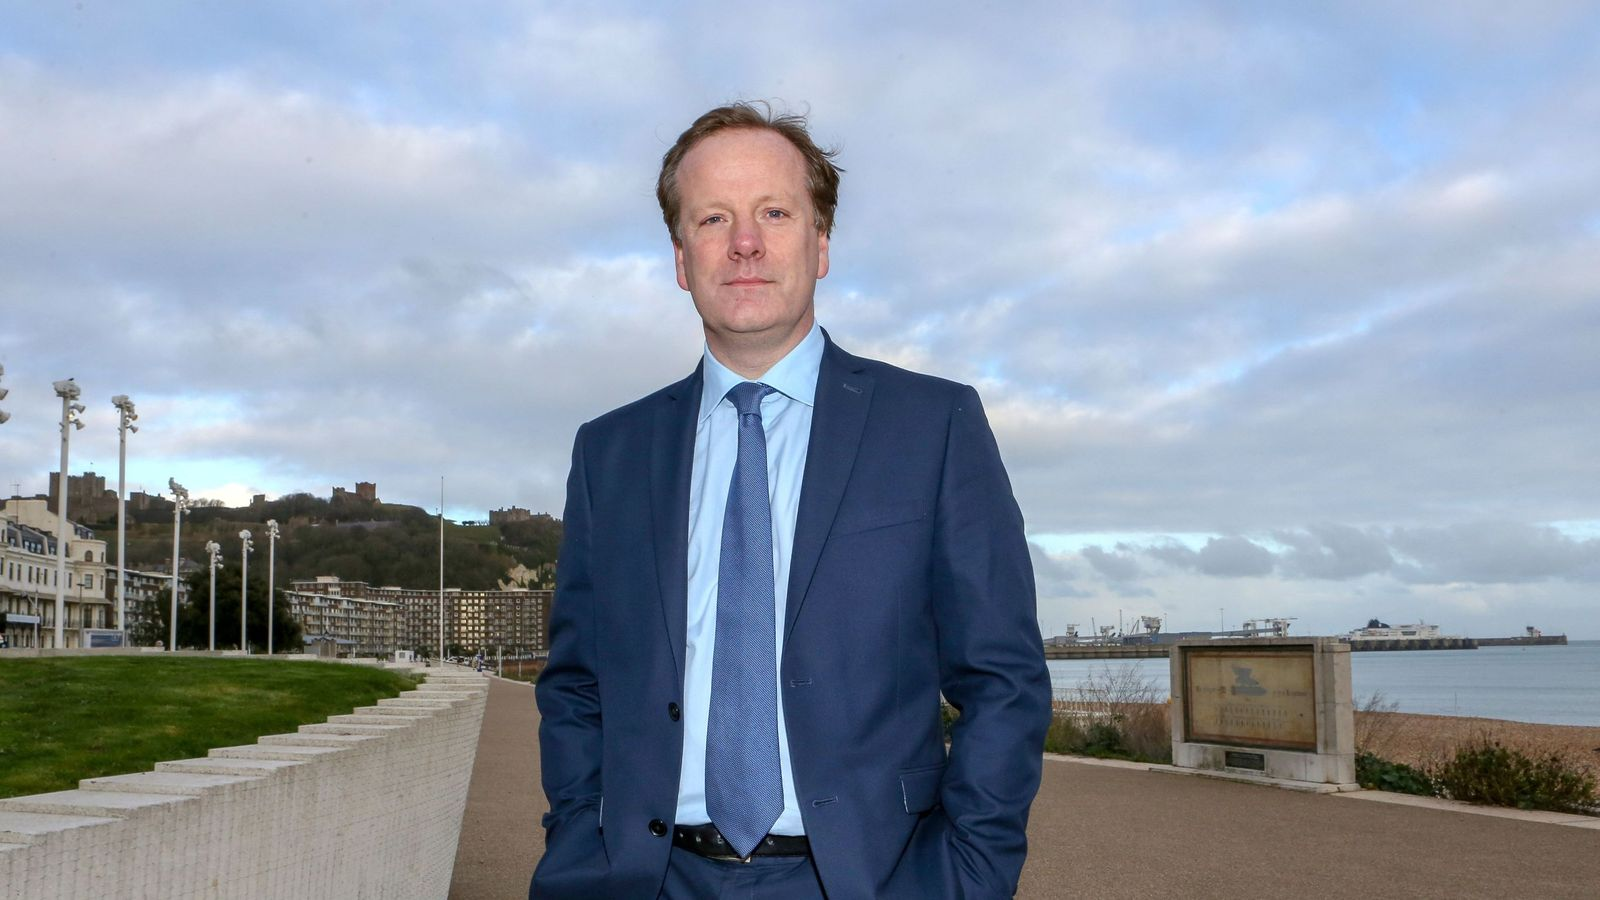 Charlie Elphicke: Tory MP charged with three counts of sexual assault | UK News | Sky News